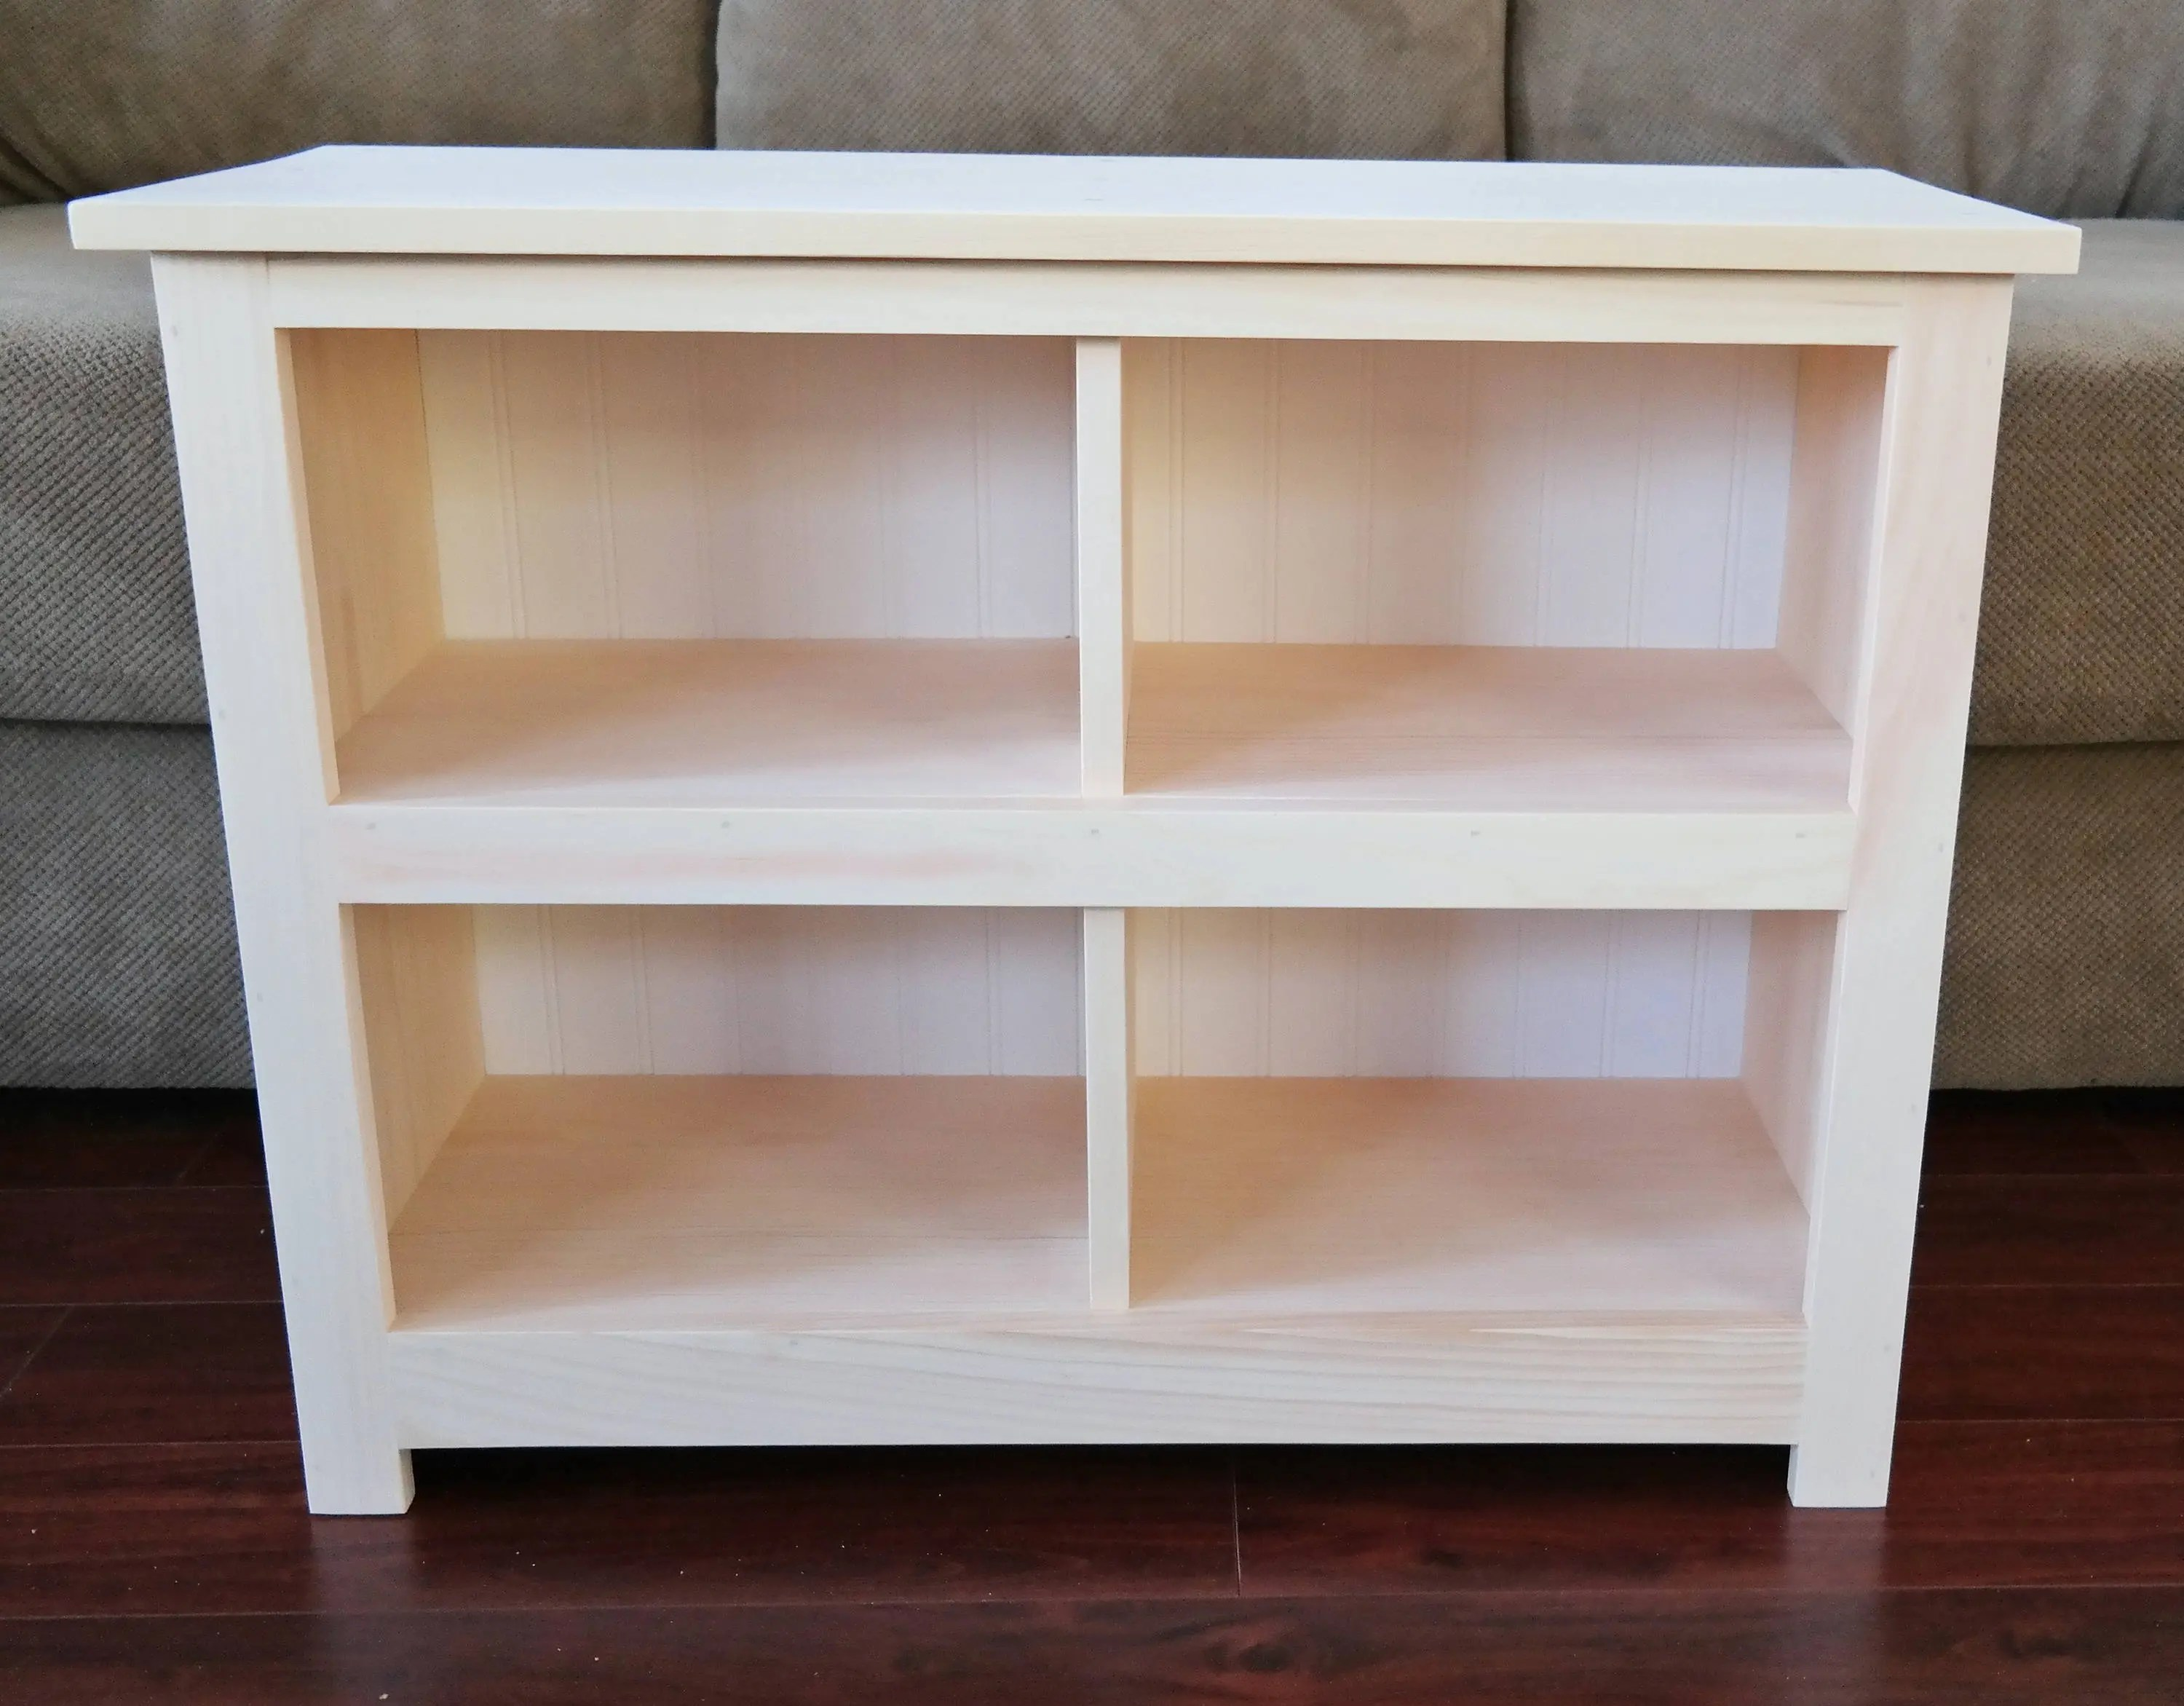 Unfinished Cubby Storage Bench